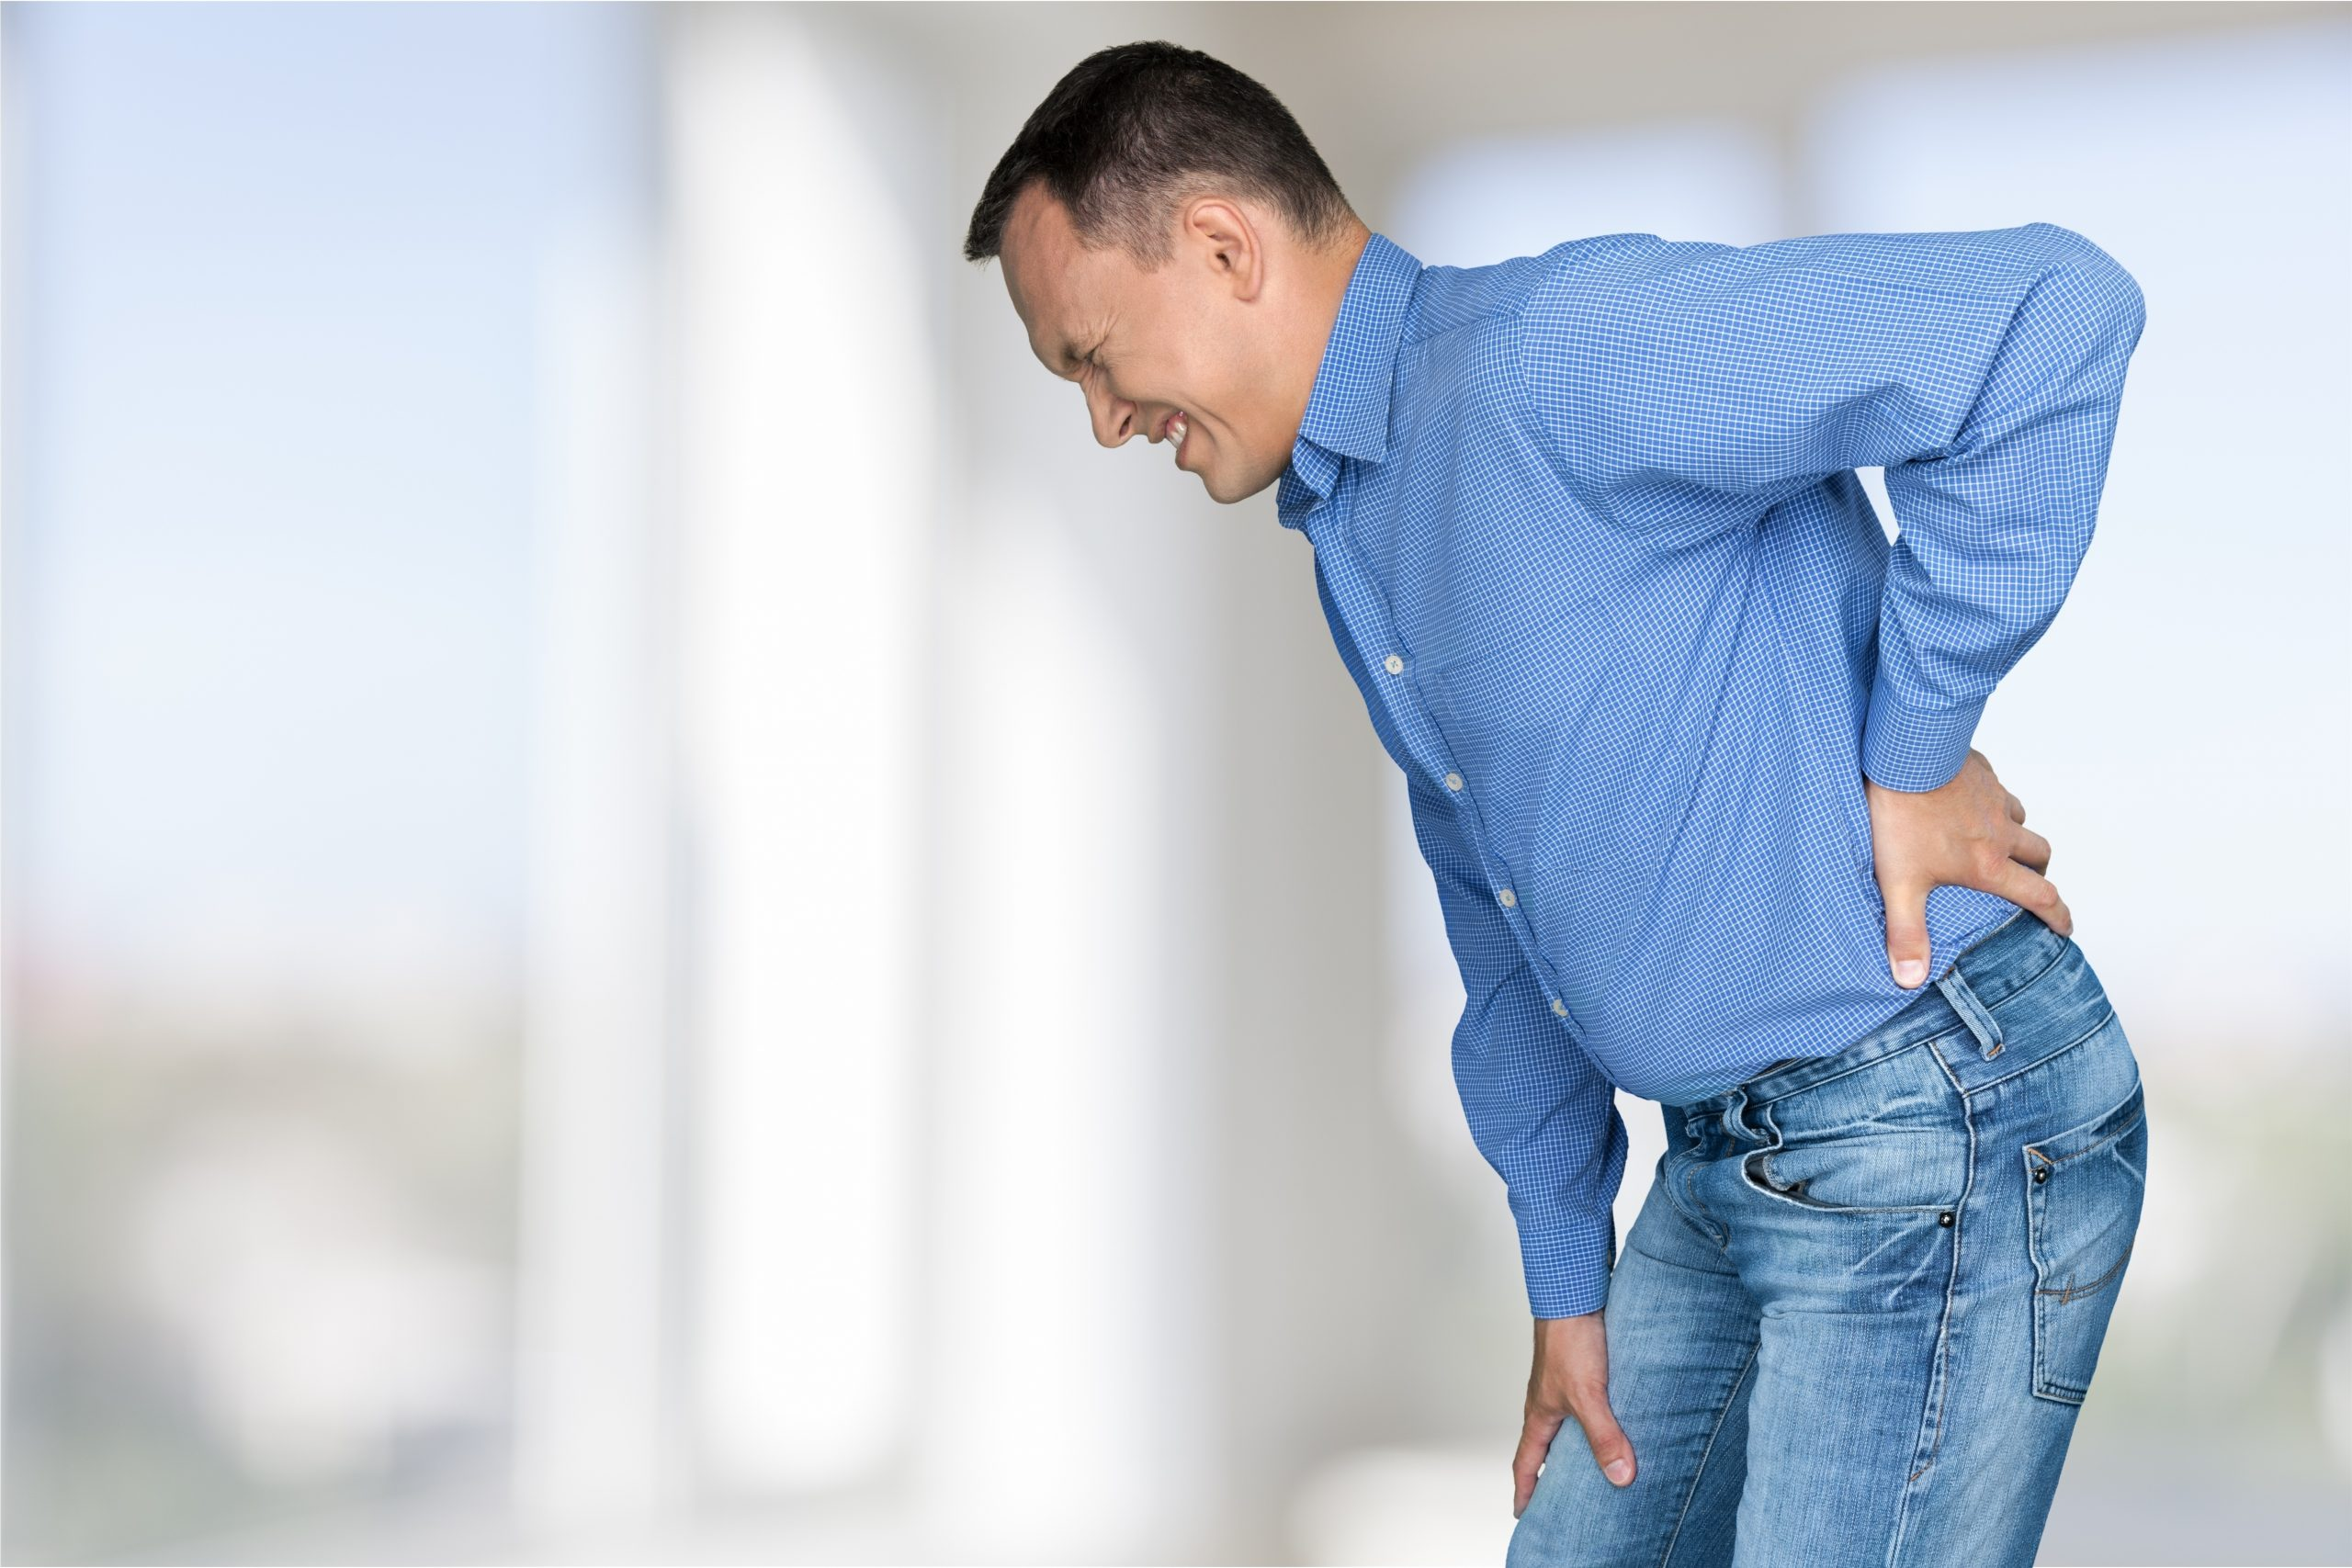 A Back Pain Relief Video Shows How To Do Exercises Correctly